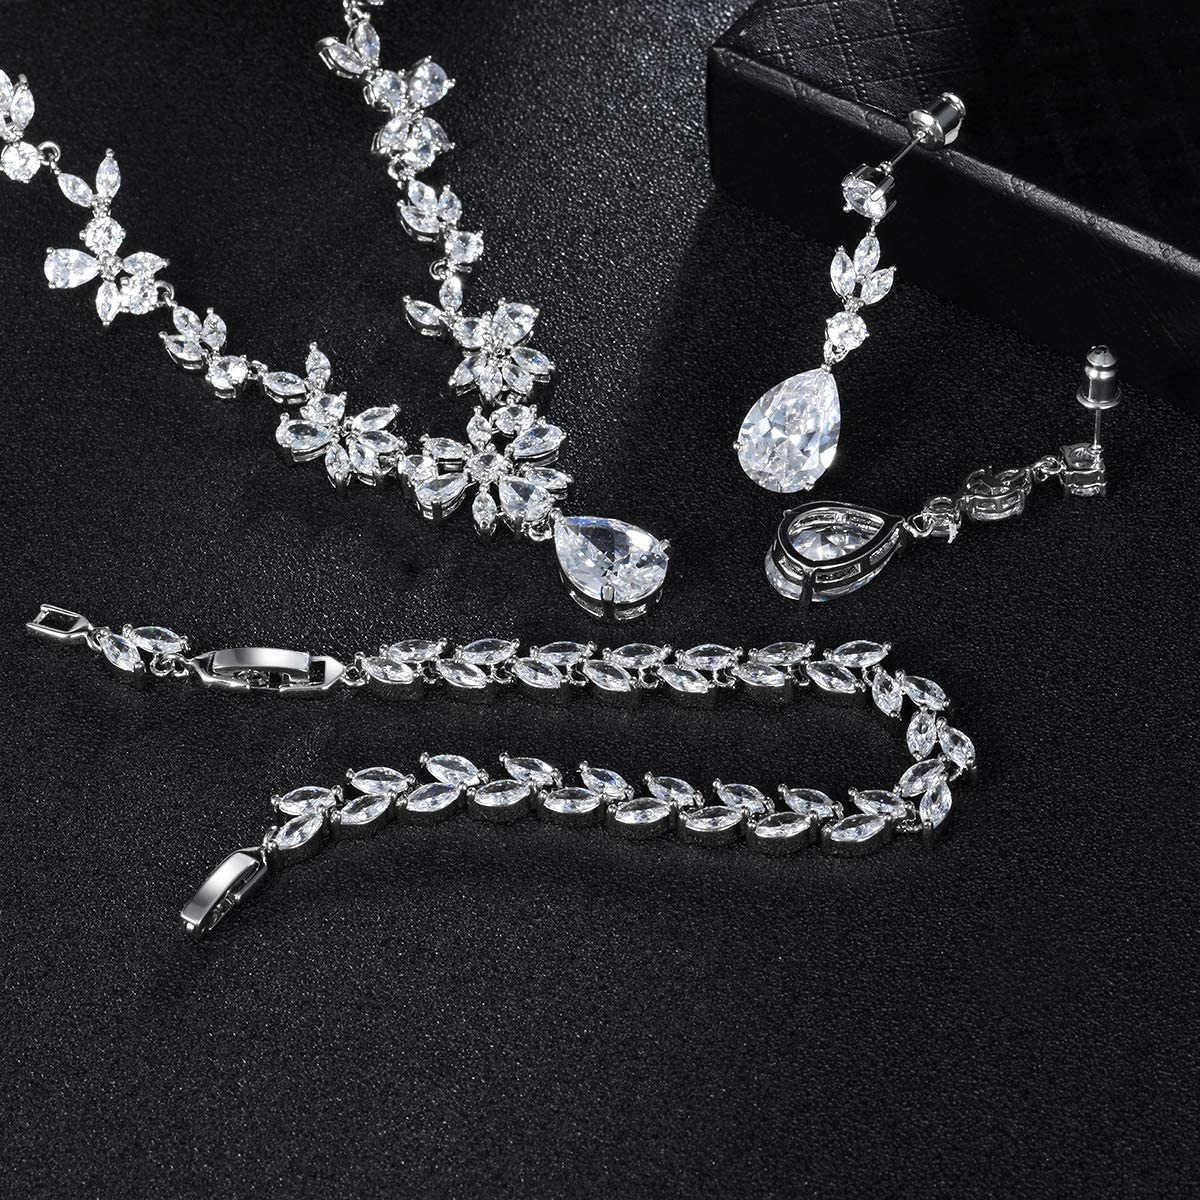 Hadskiss Jewelry Set for Women, Necklace Dangle Earrings Bracelet Set, White Gold Plated Jewelry Set with White AAA Cubic Zirconia, Allergy Free Wedding Party Jewelry for Bridal Bridesmaid